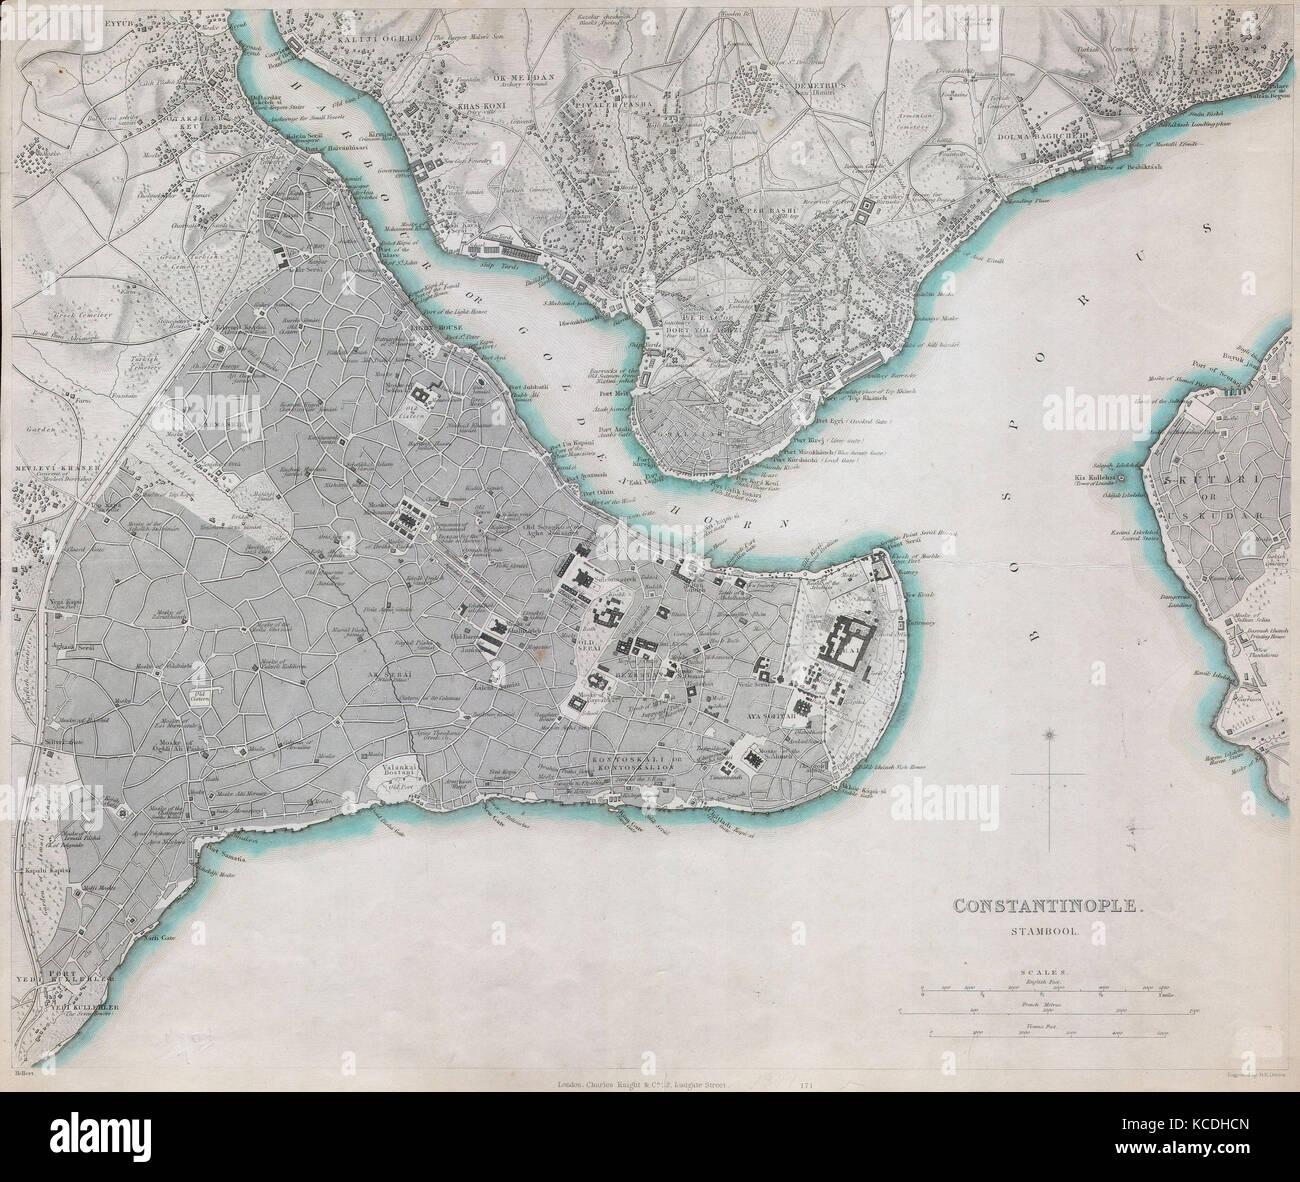 1840 S D U K Map Of Constantinople Istanbul Turkey Stock Photo